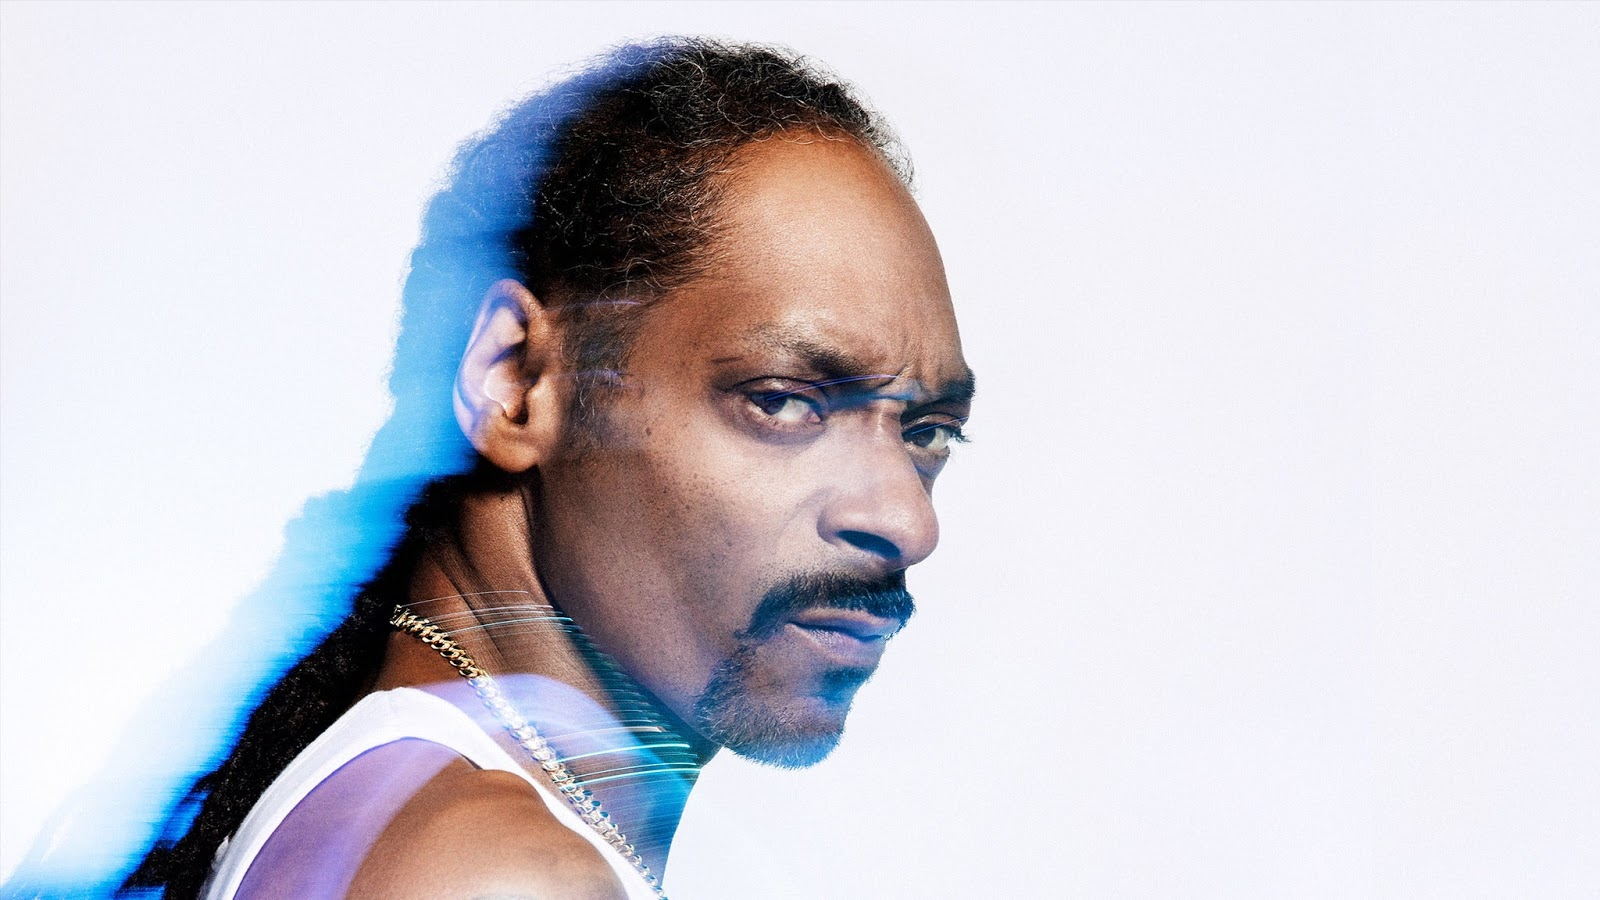 Snoop Dogg - $124 million